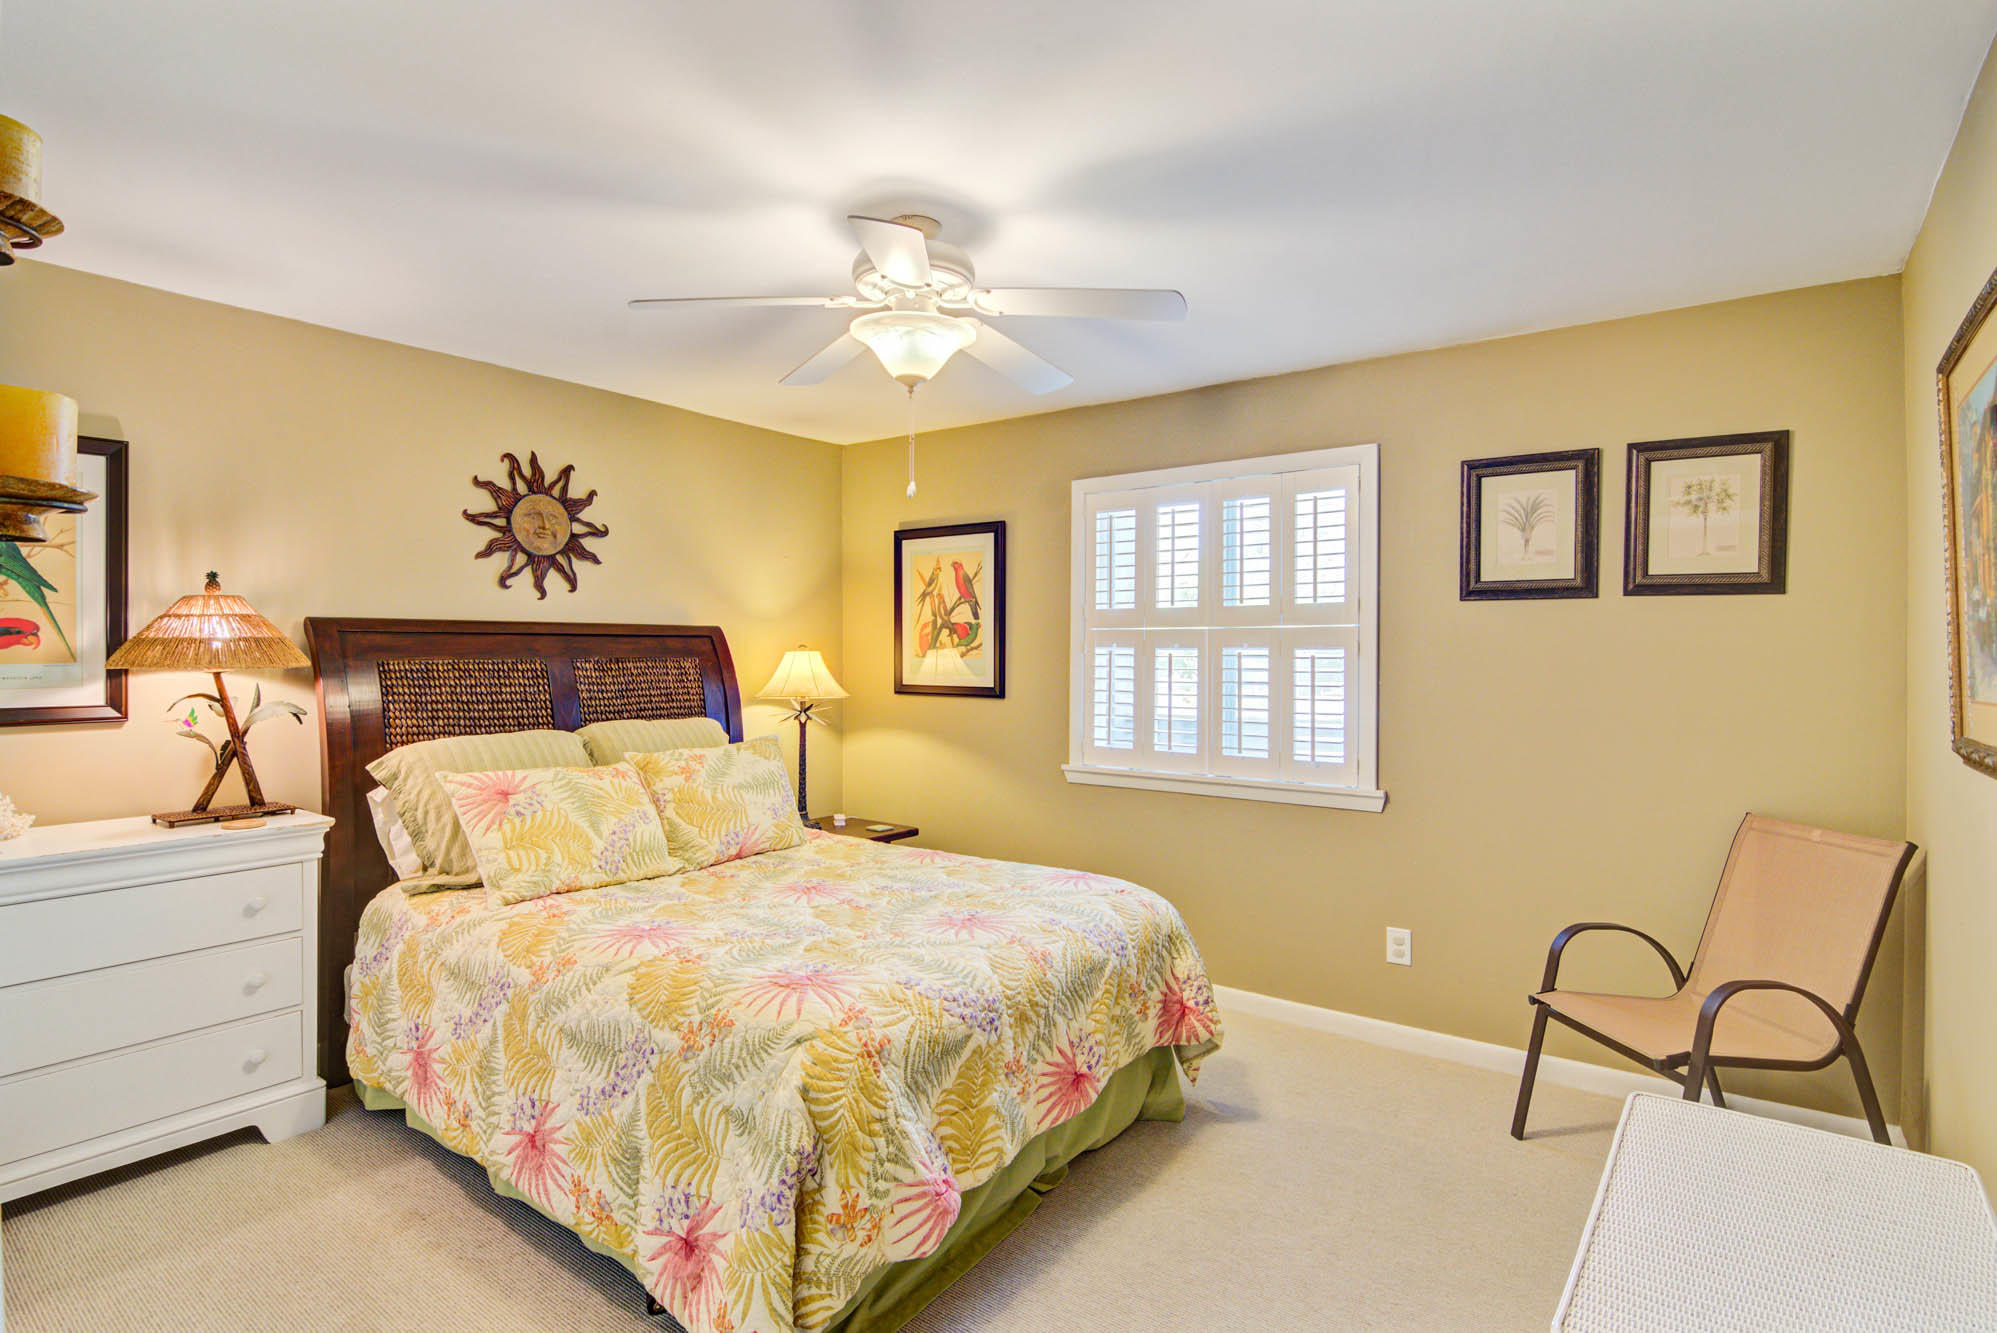 Mariners Cay Homes For Sale - 19 Mariners Cay, Folly Beach, SC - 20